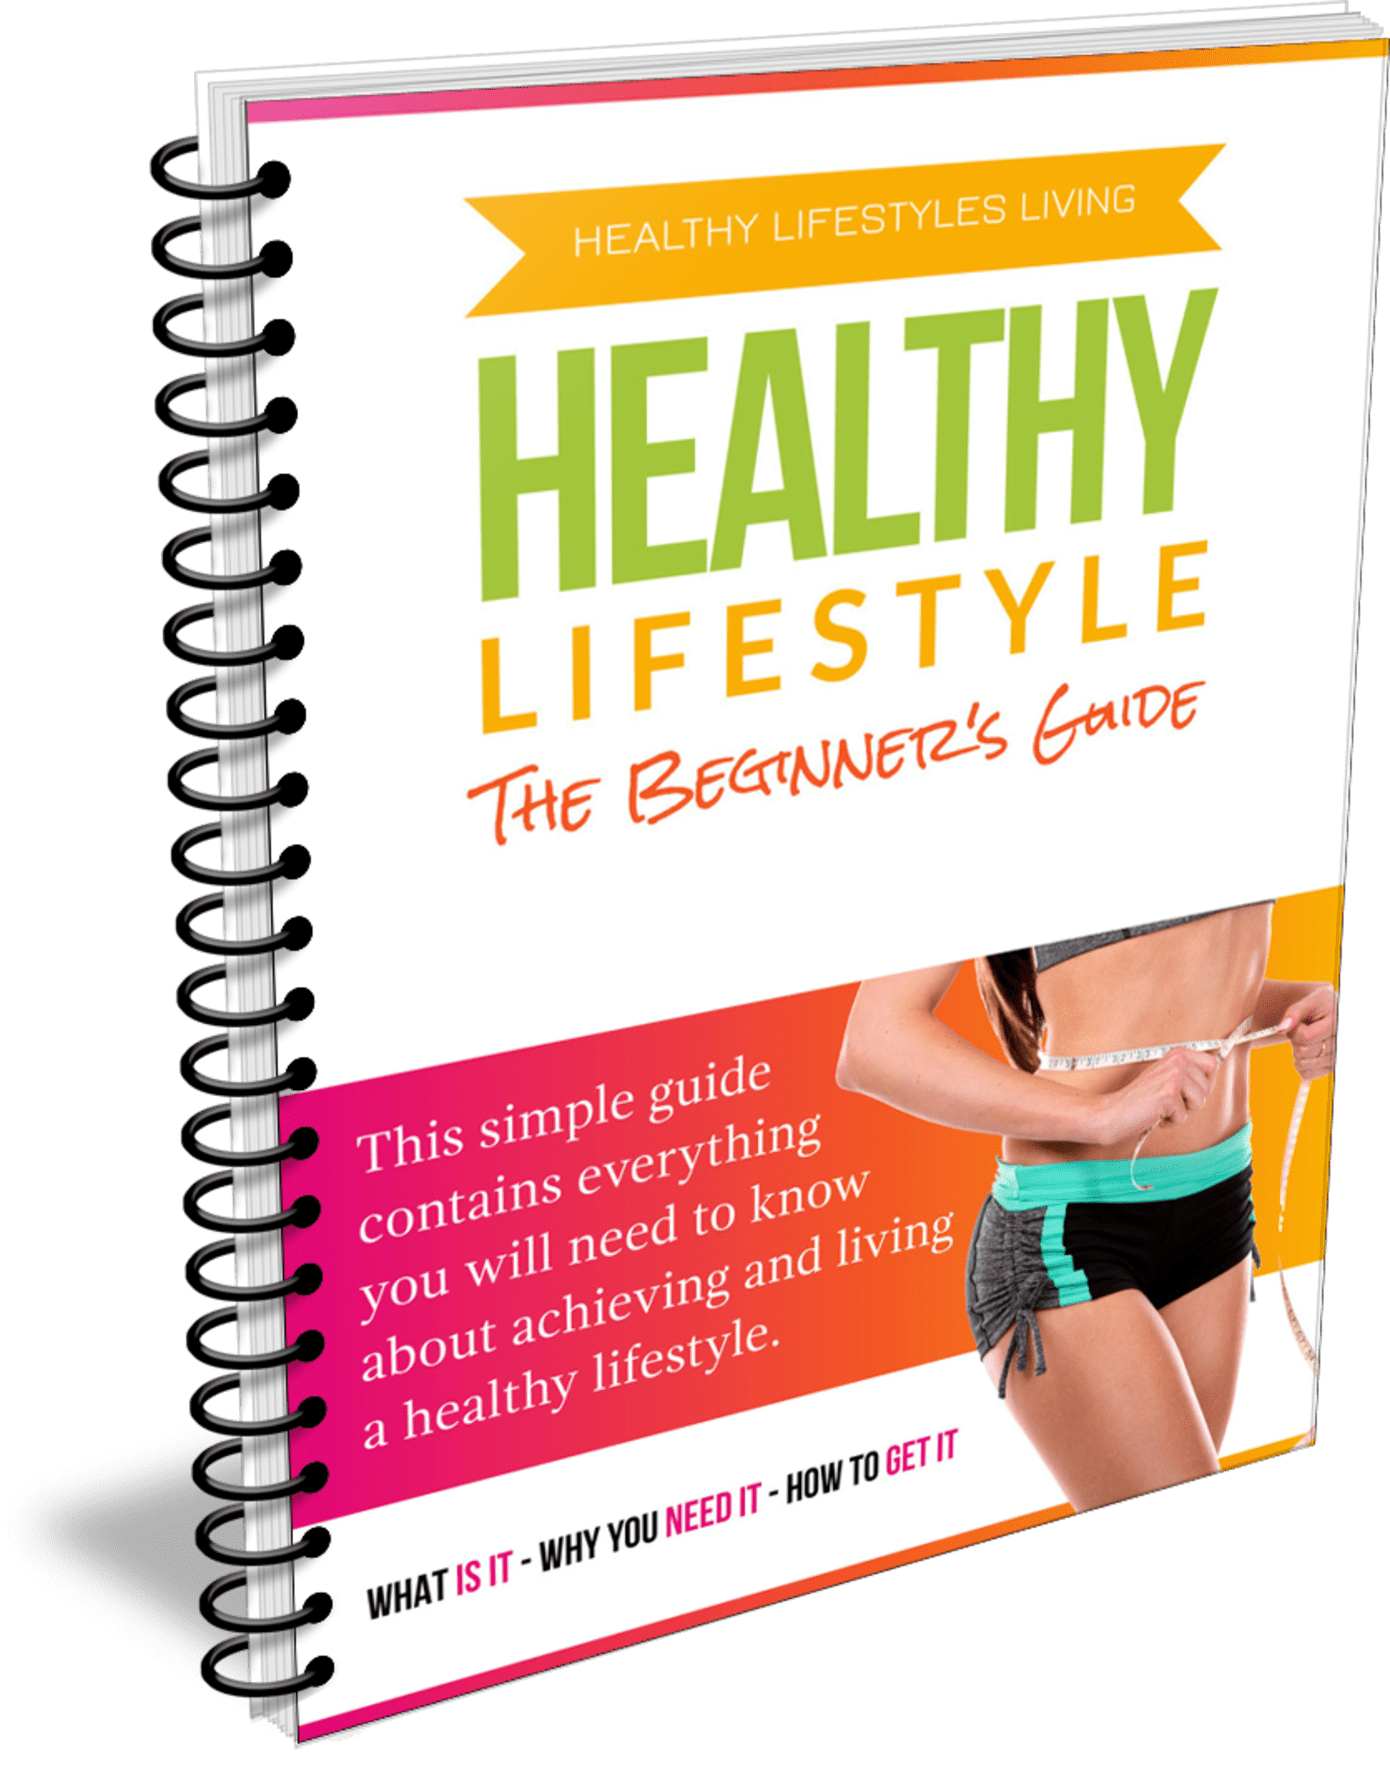 The Beginners Guide To A Healthy Lifestyle